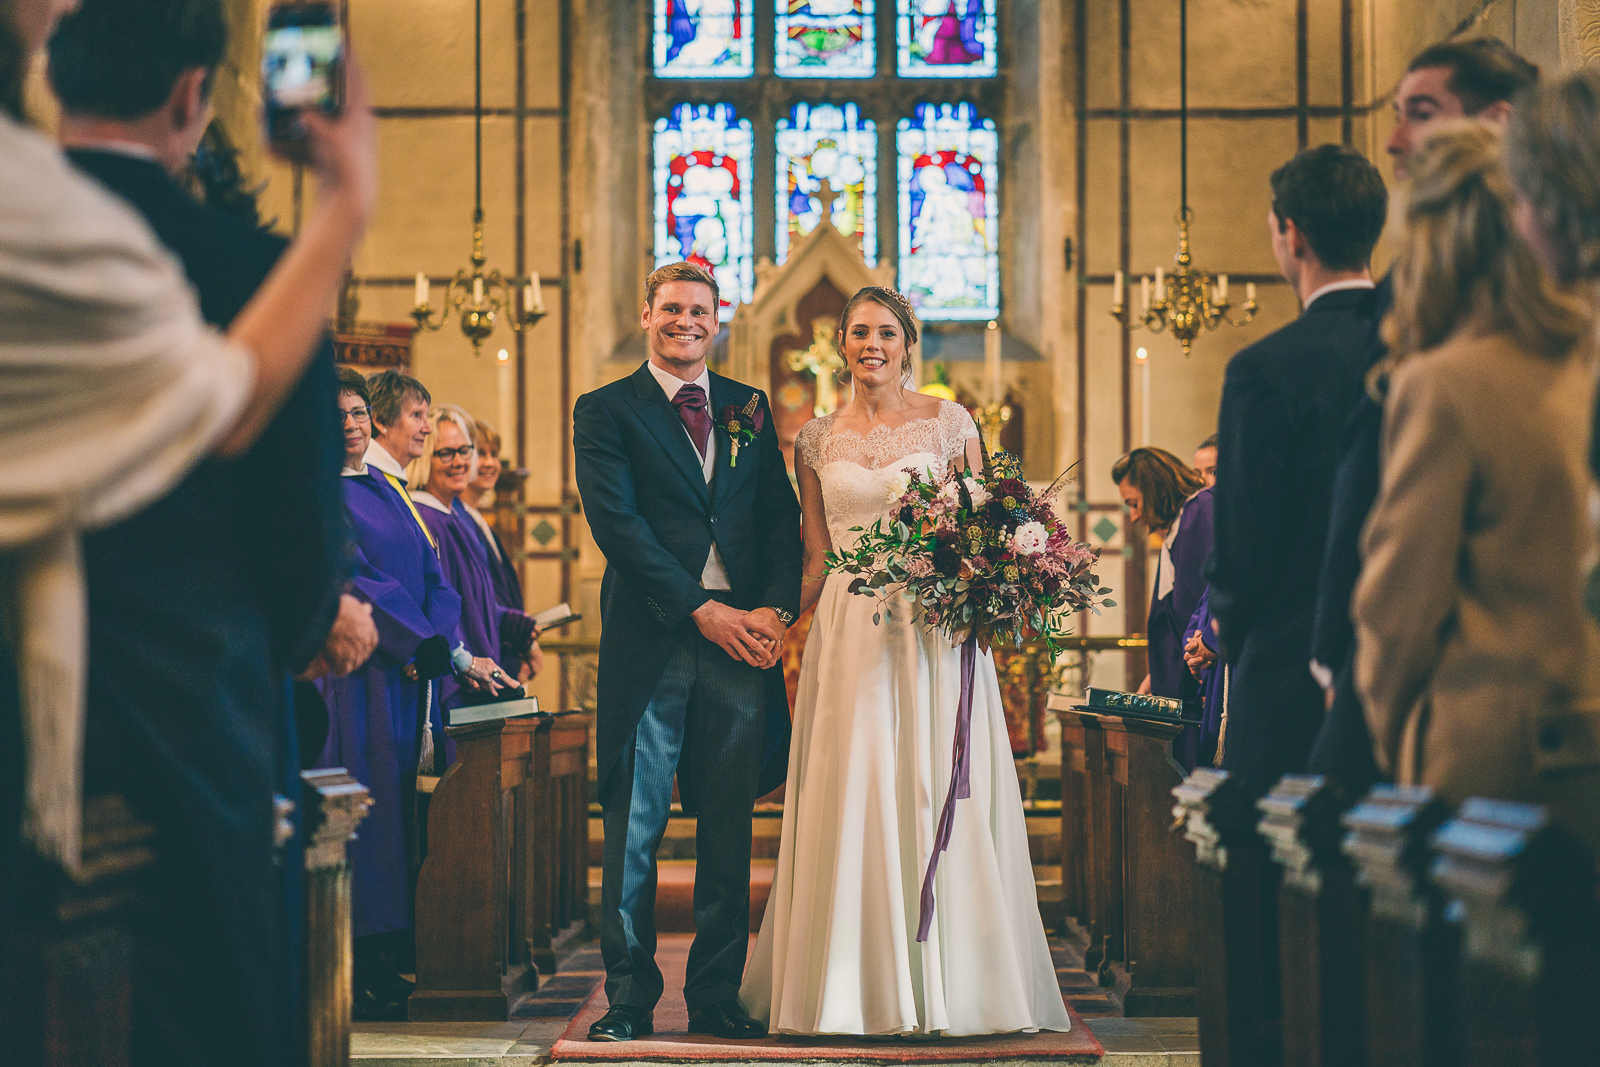 The Great Tythe Barn Winter Wedding – Bex & Johnny